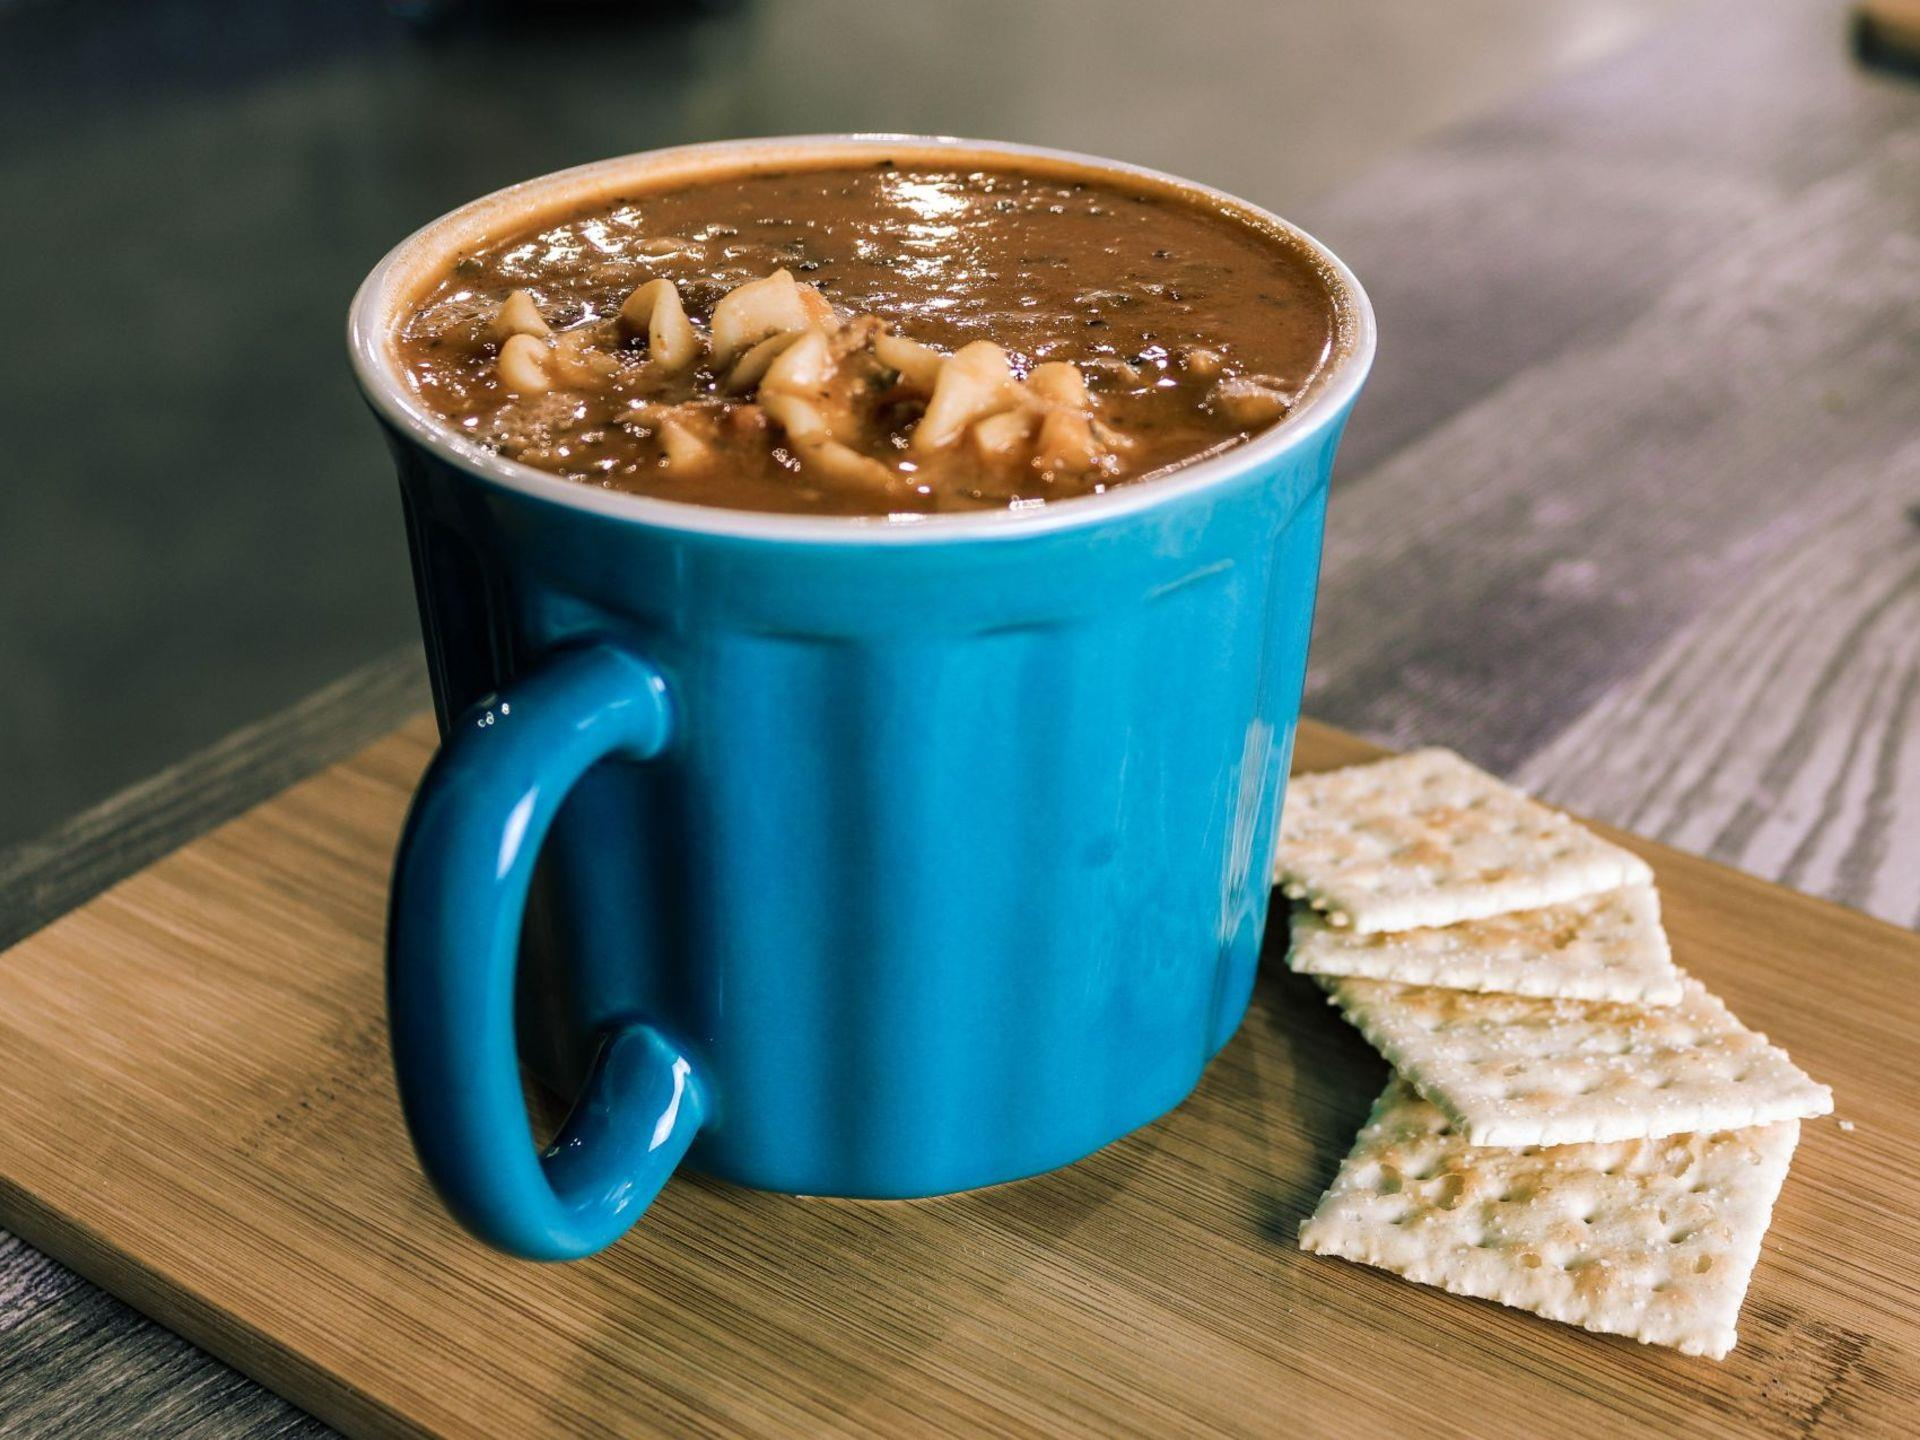 Chilli in a mug with saltine crackers